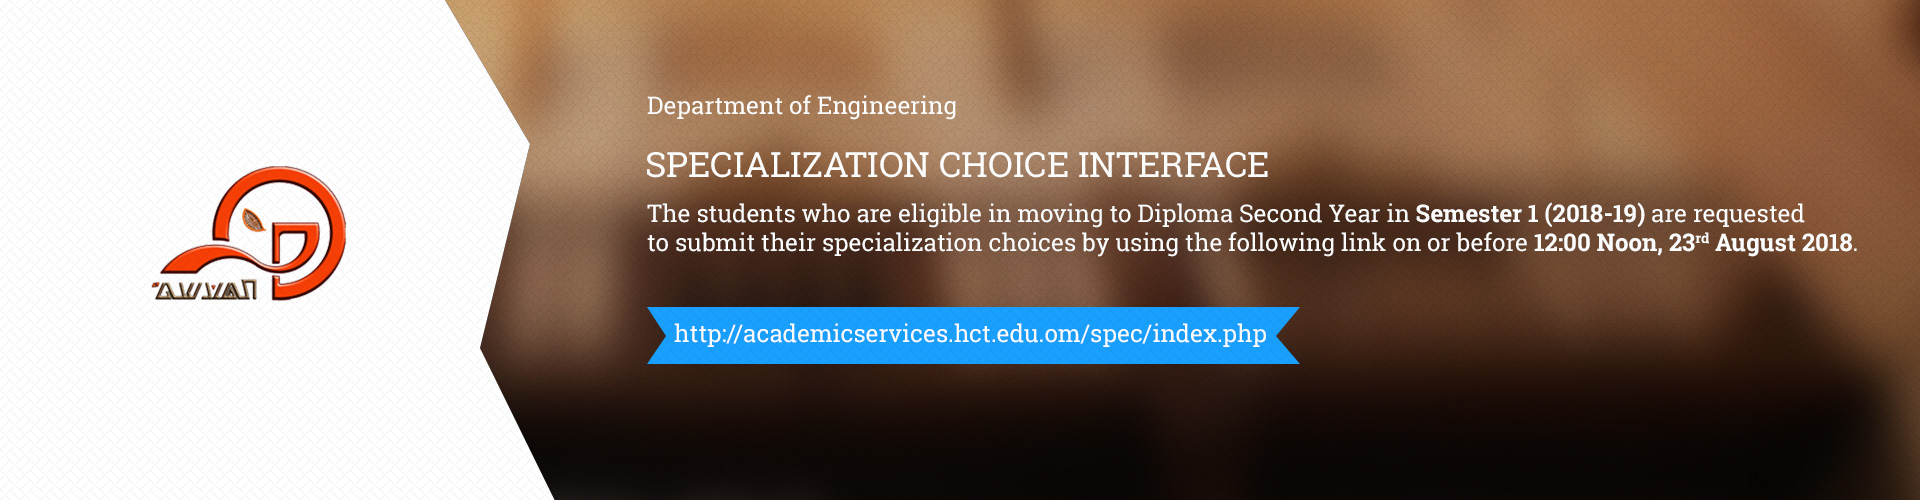 Engineering - Specialization Choice